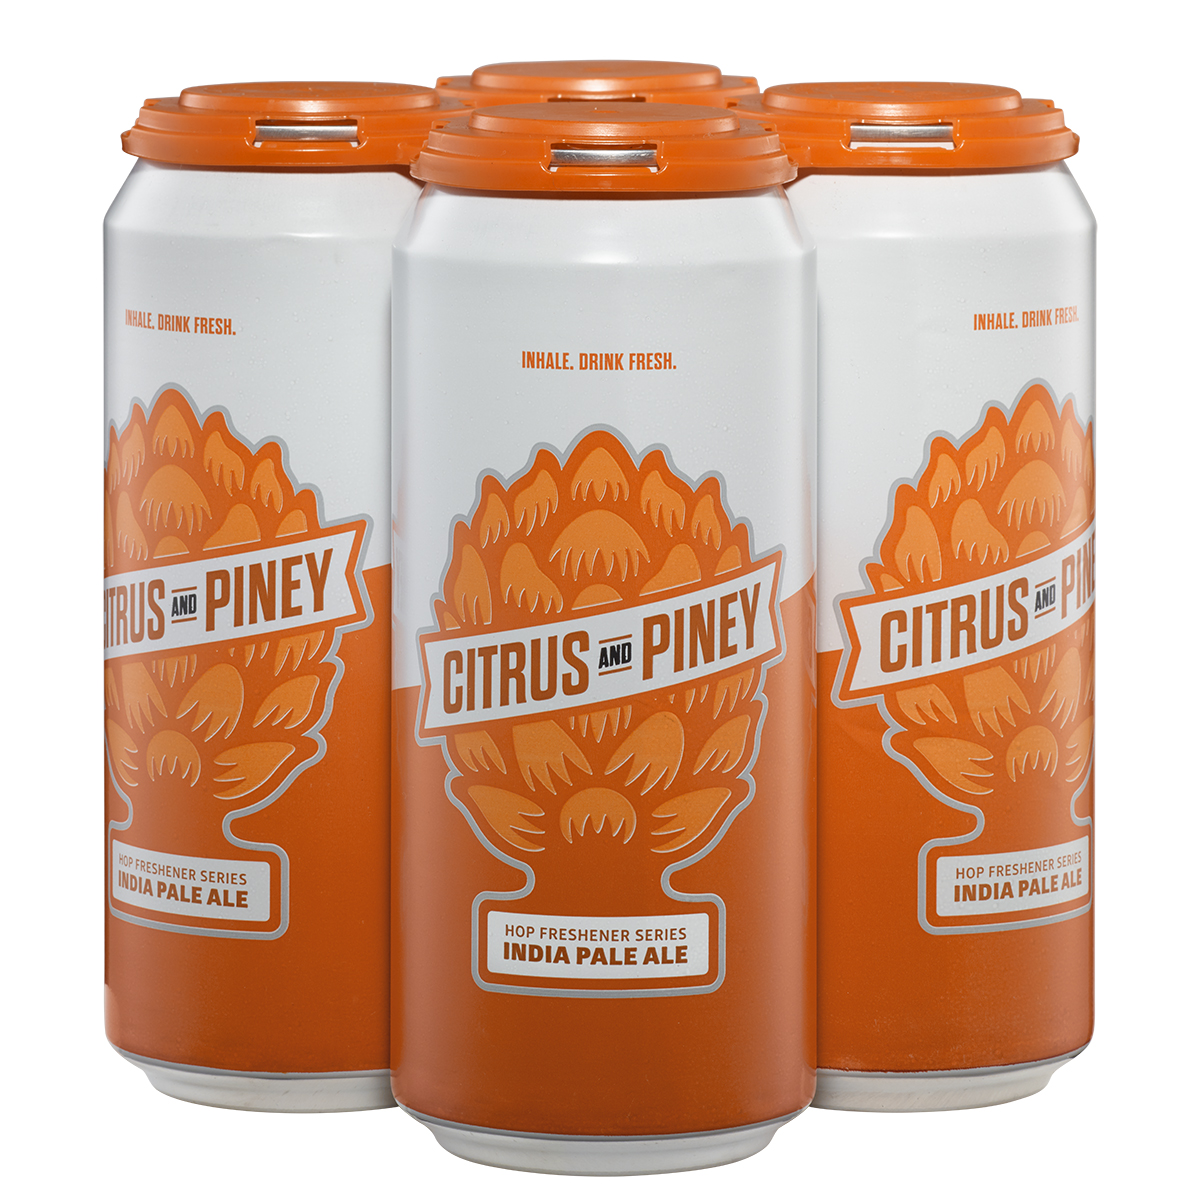 Citrus and Piney IPA - Four-Pack MAIN